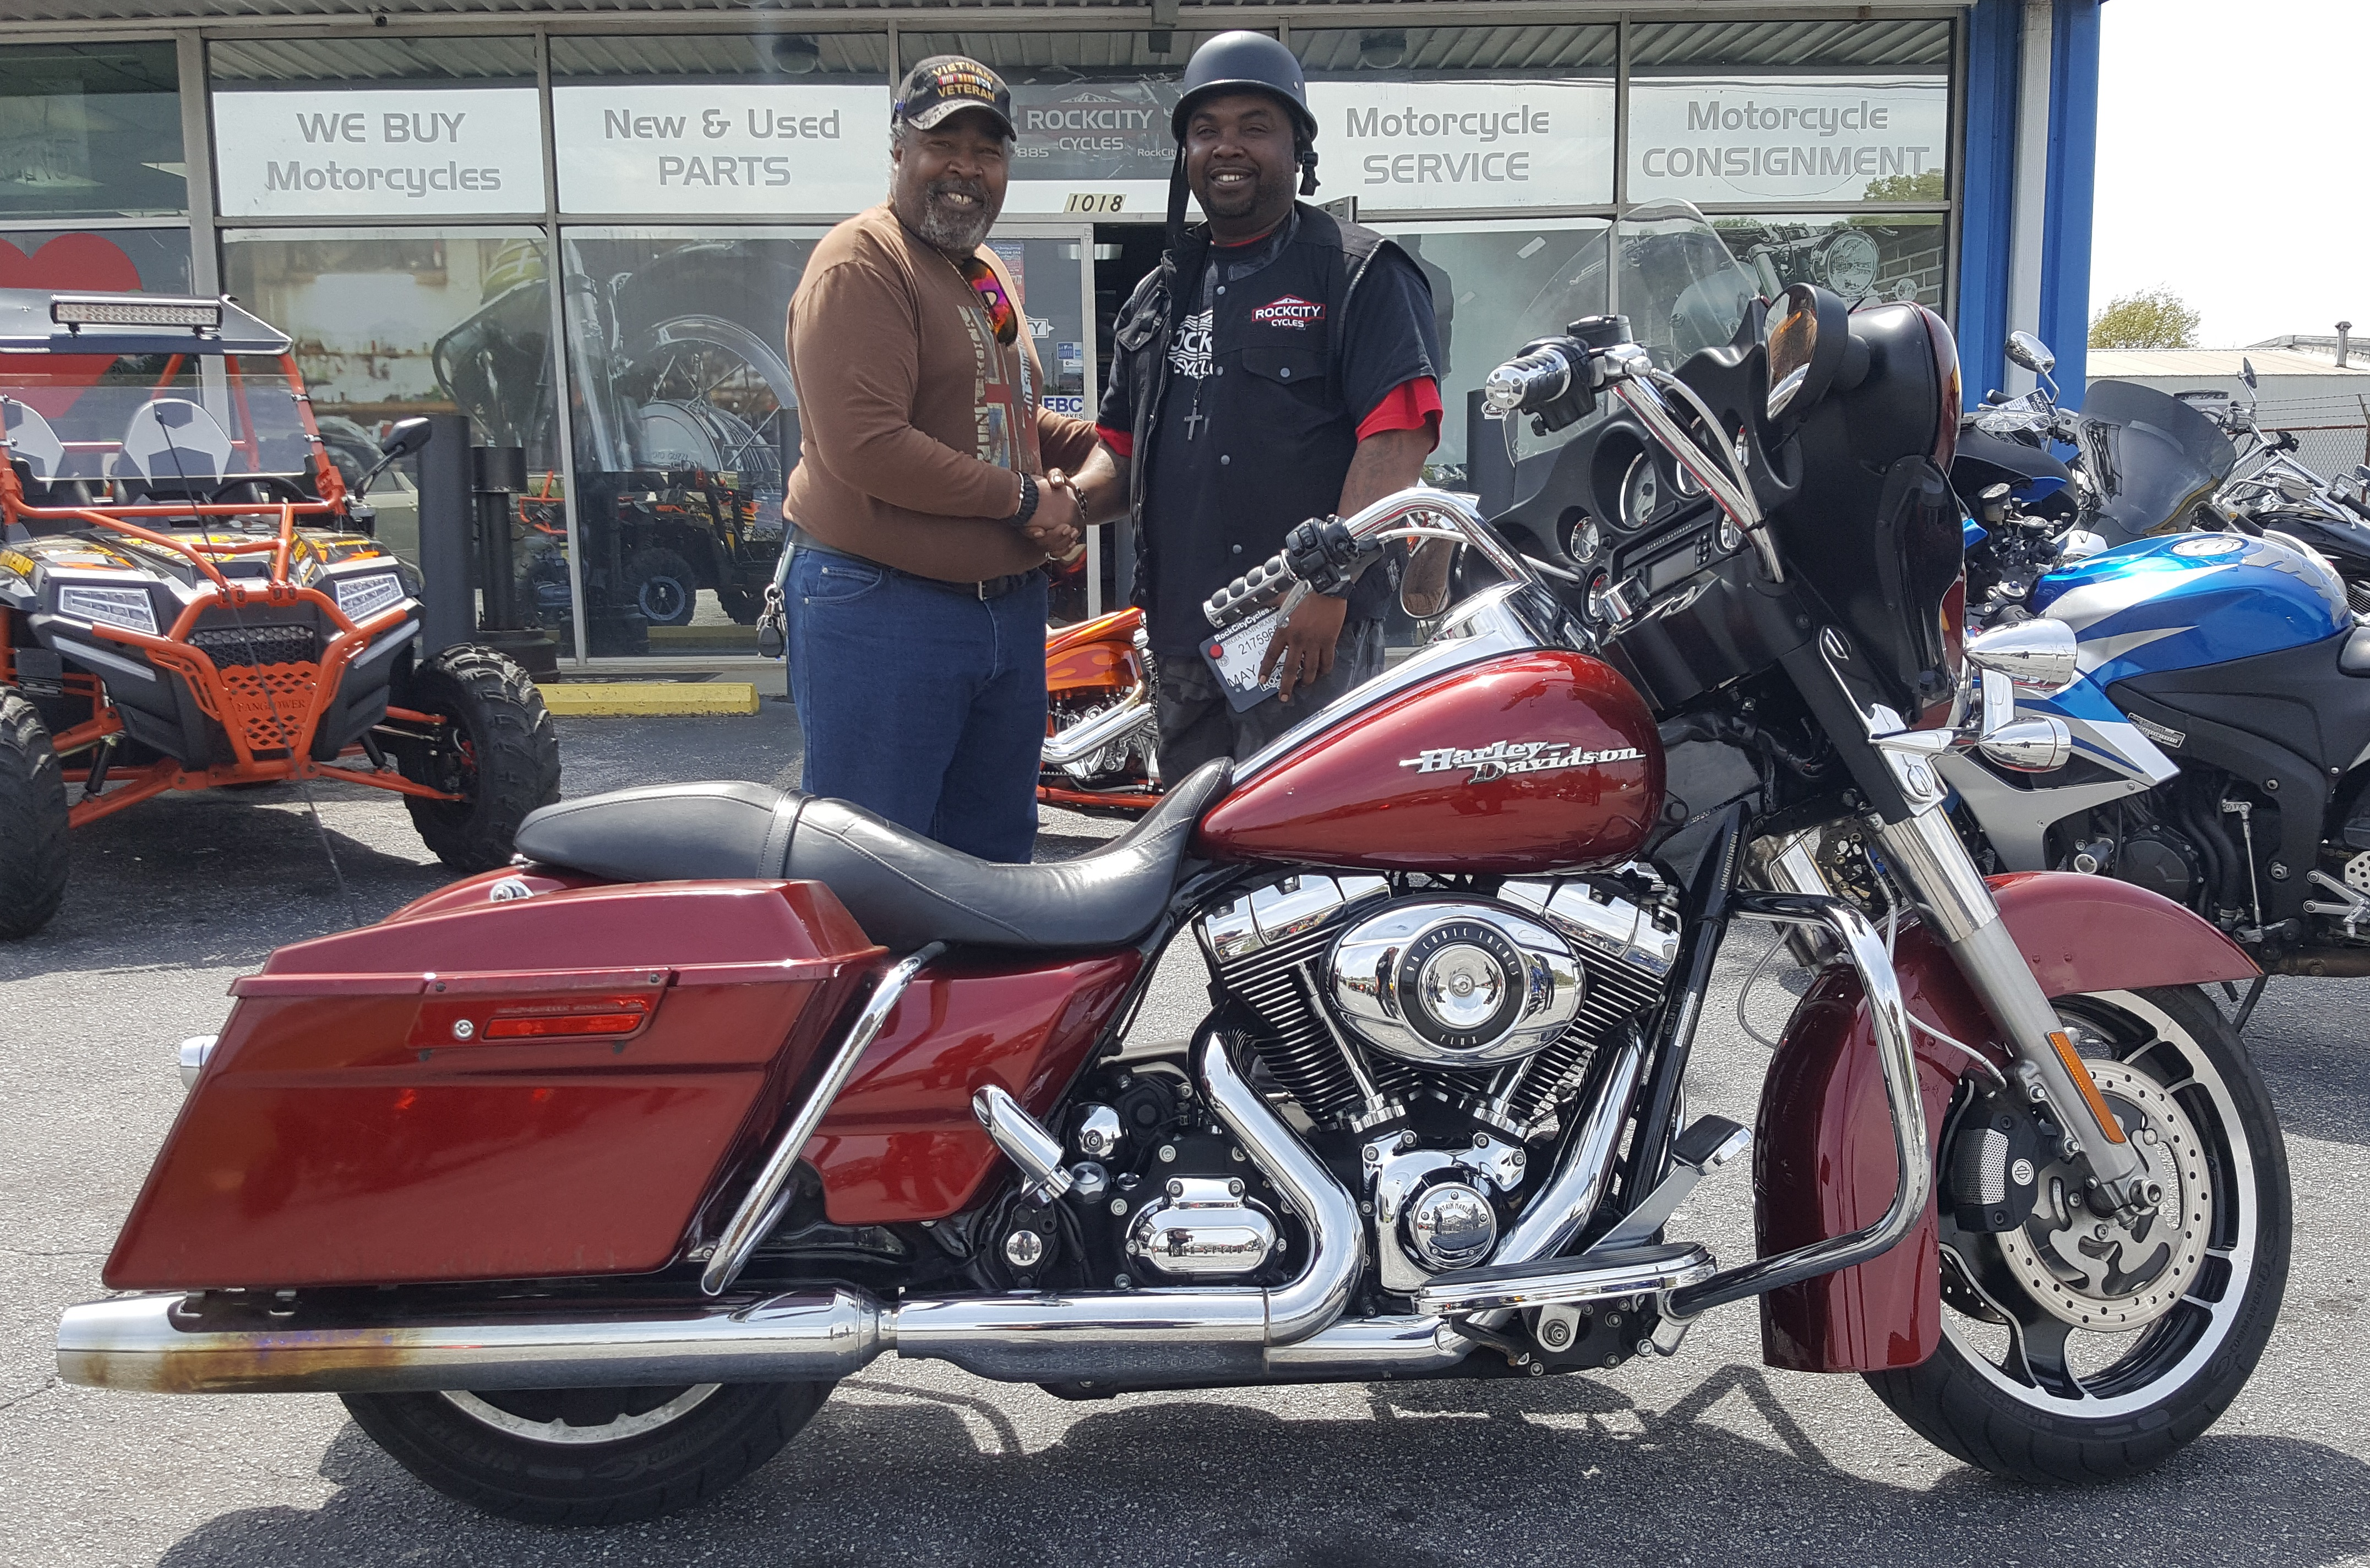 John E. with his 2010 Harley-Davidson FLHX Street Glide